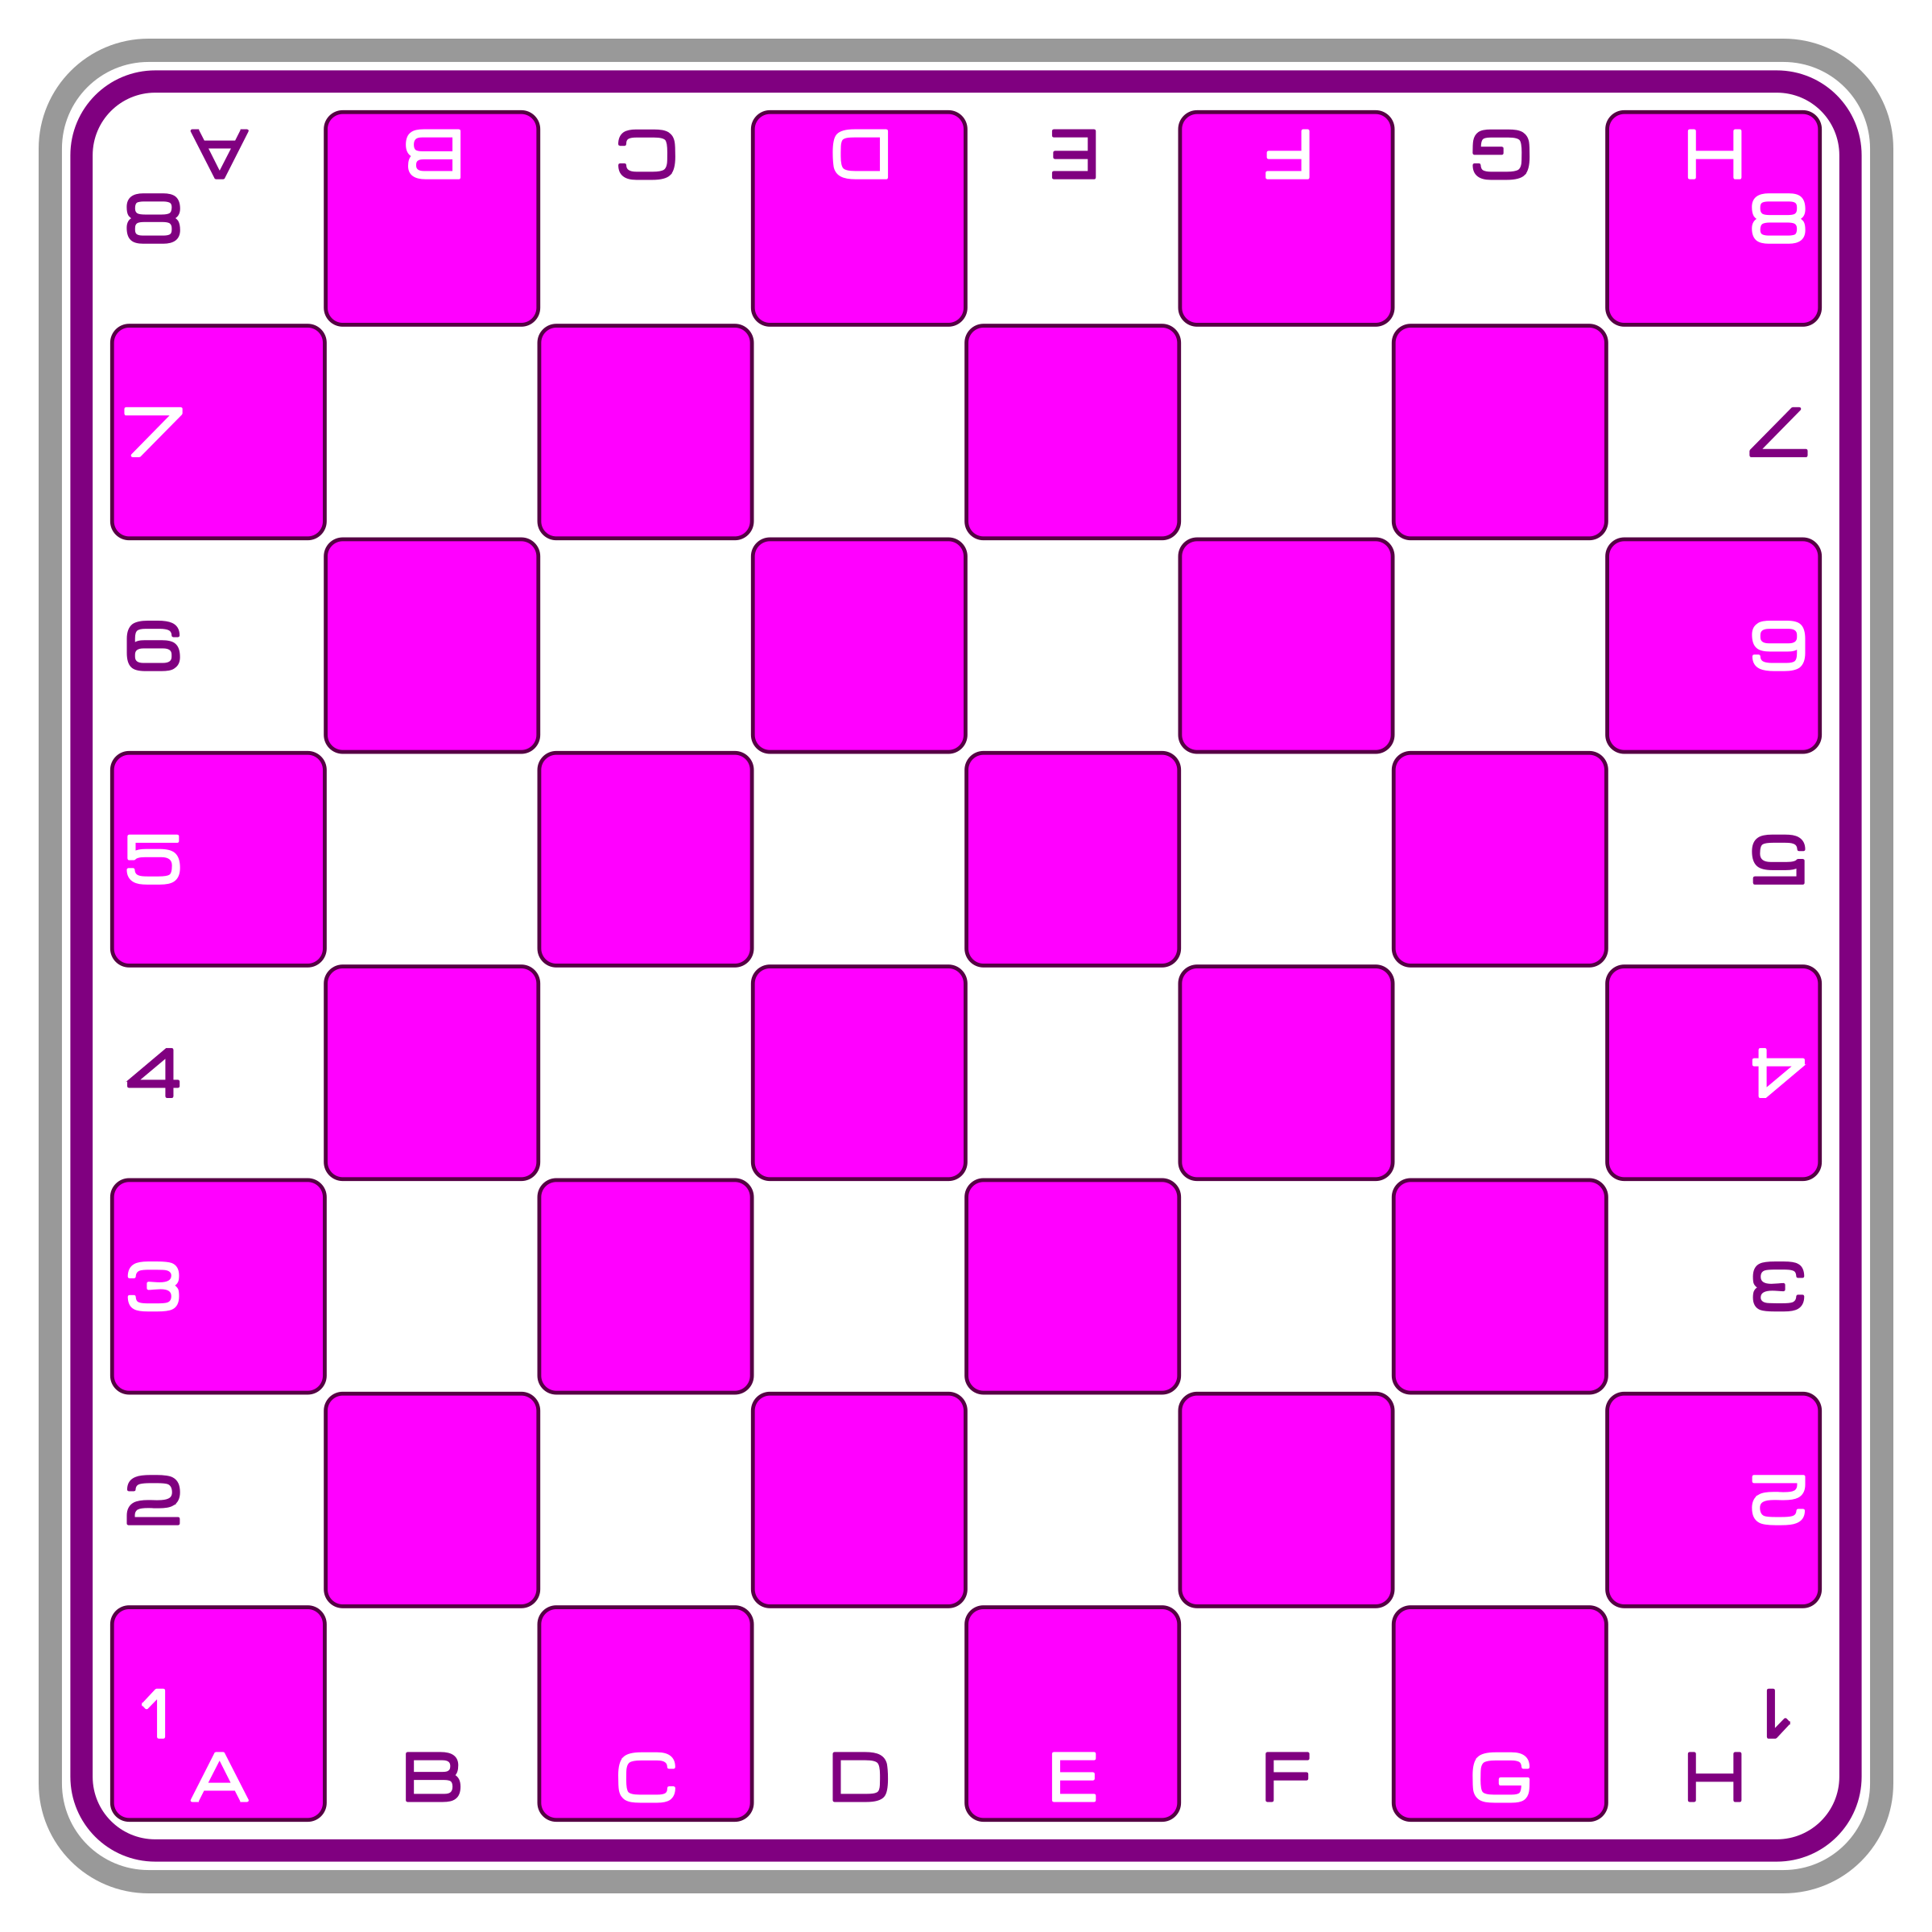 Chessboard - Modern Pink by DG-RA